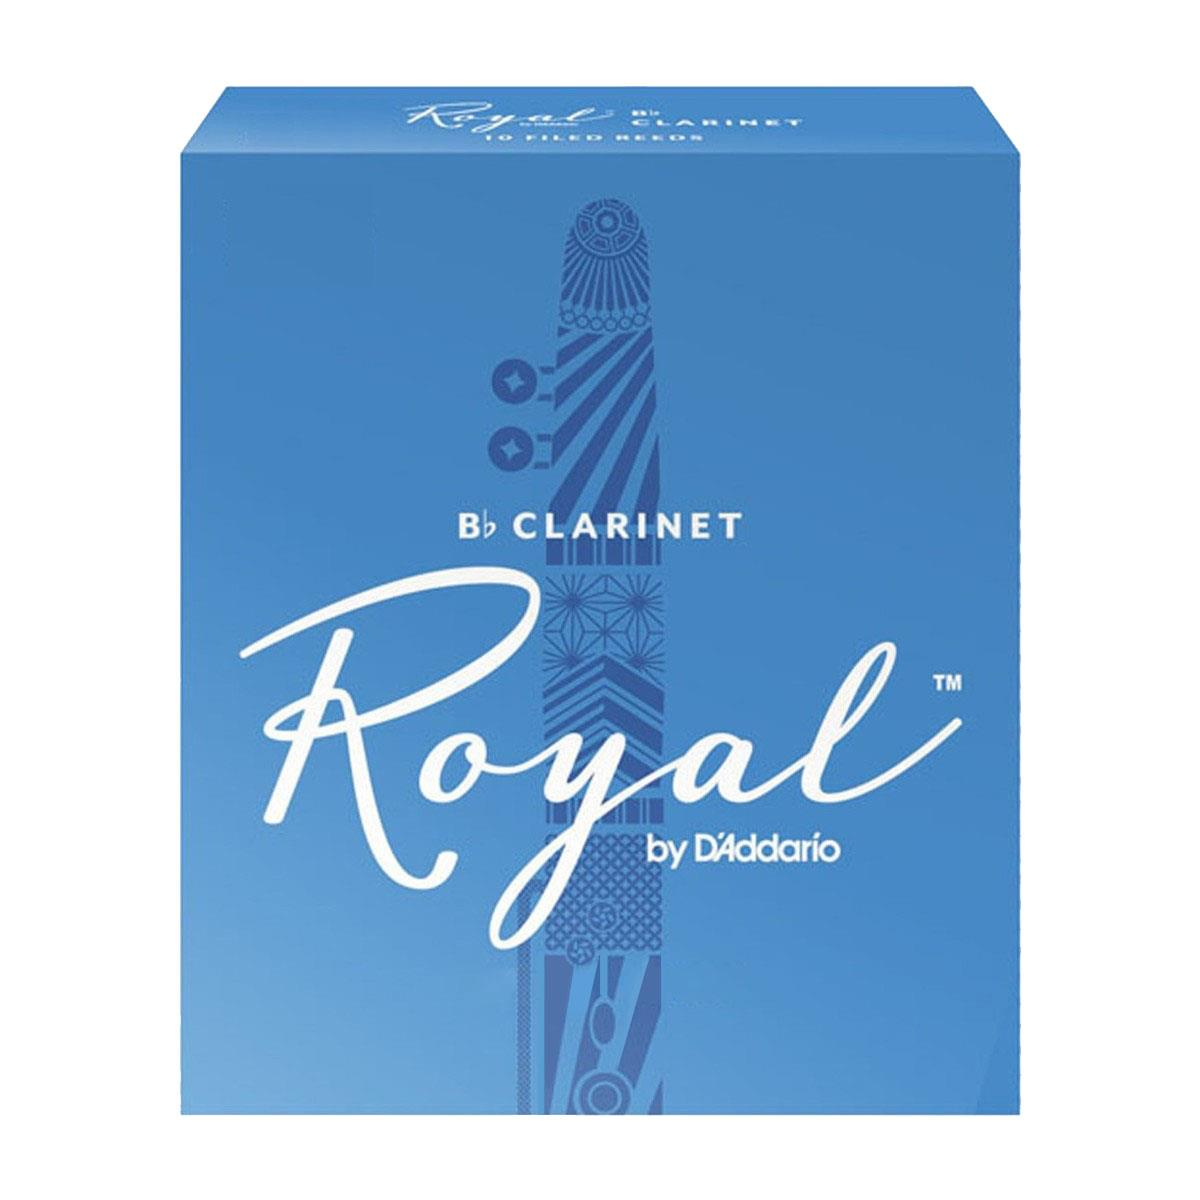 Image of D'Addario Woodwind Royal RCB1020 Bb Clarinet Reeds Strength 2 10-pack 0046716533234